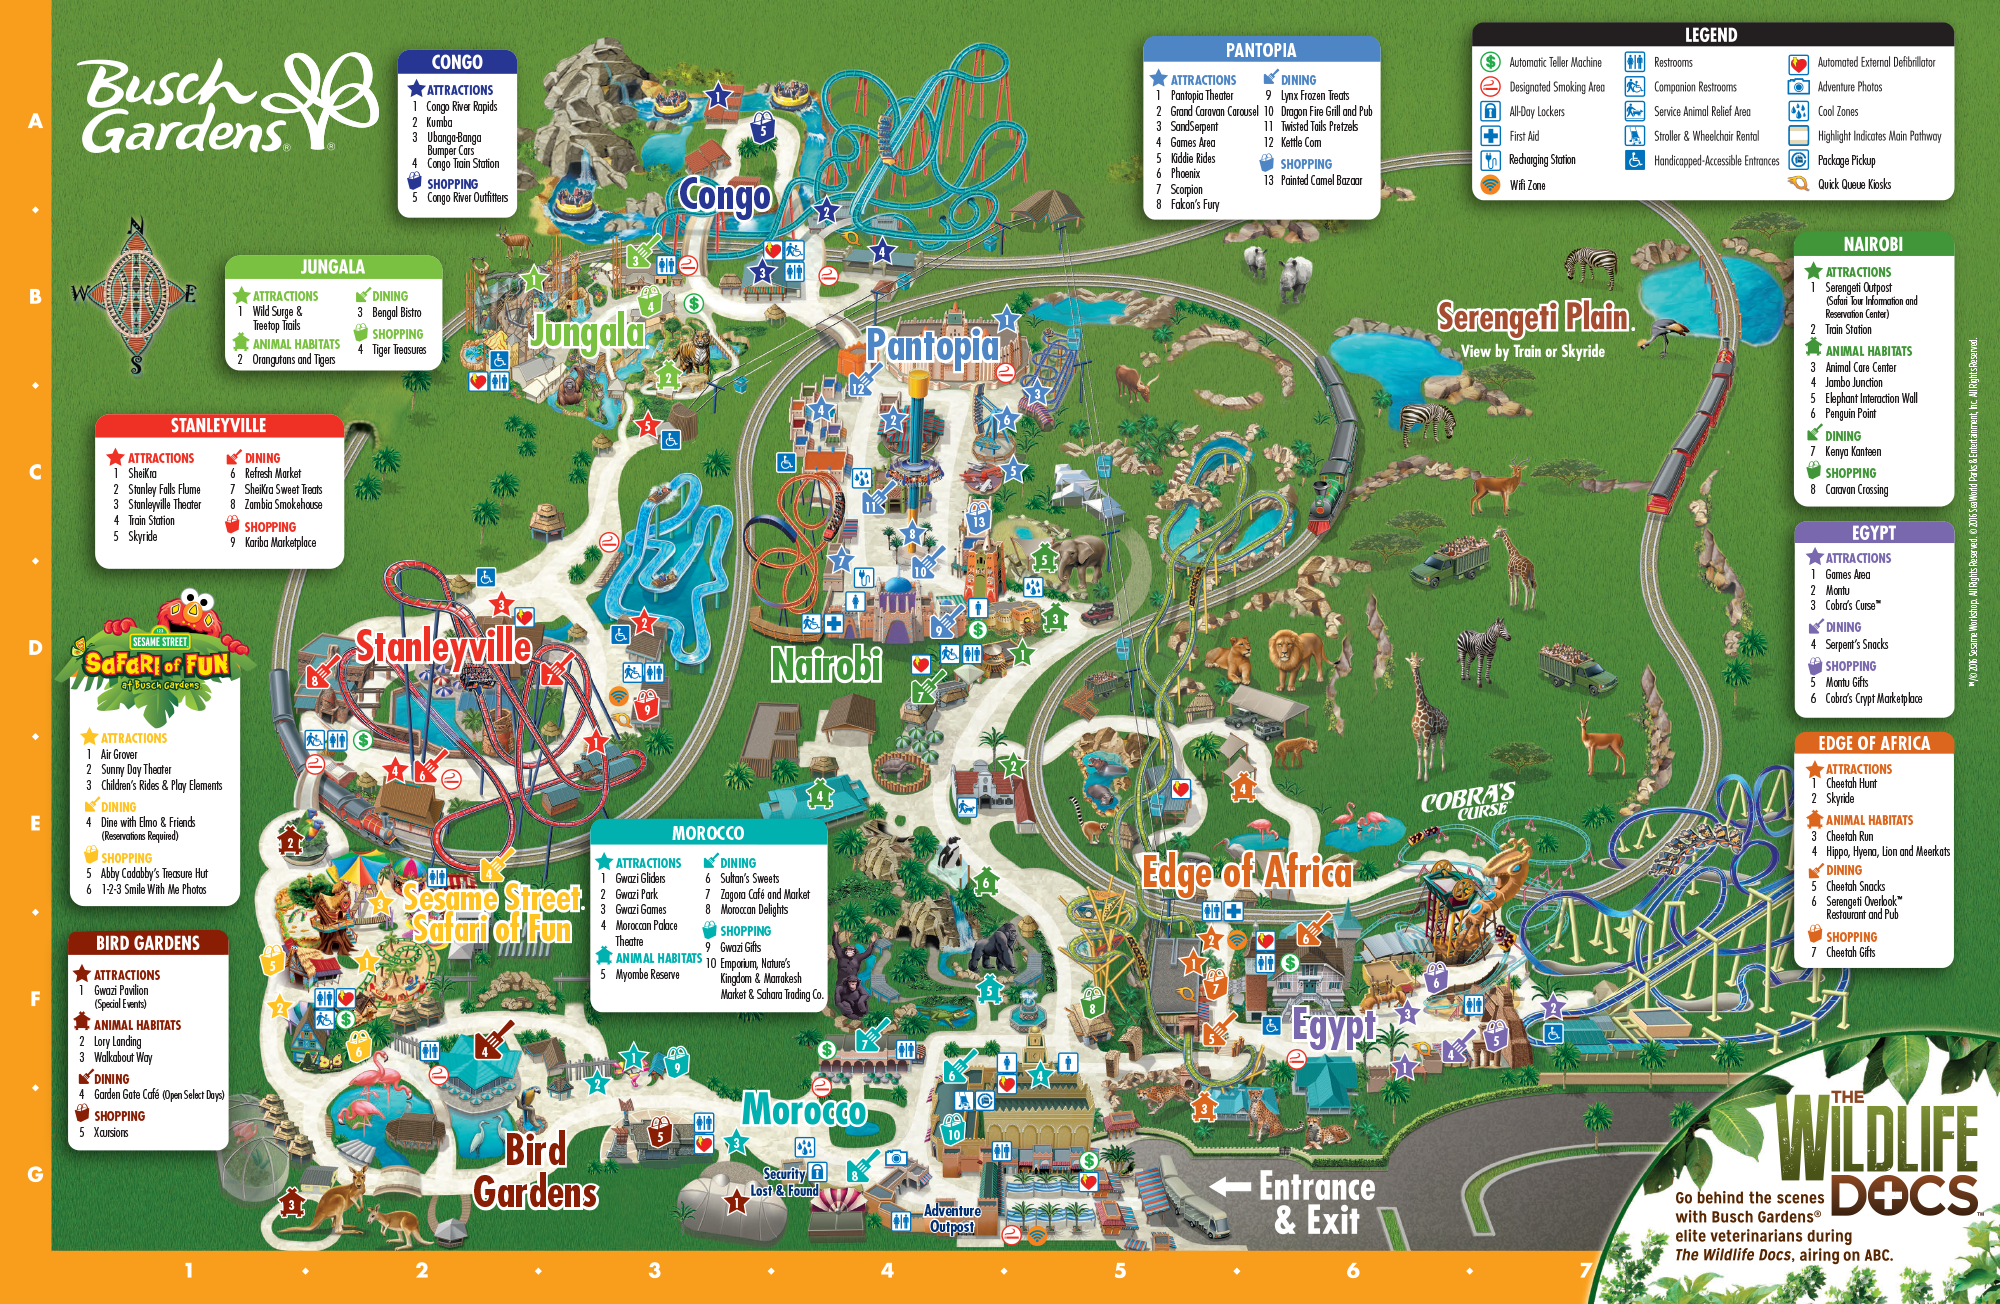 Explore all of Busch Gardens Tampa Bay by viewing our park map! Don't forget to download the mobile app and take advantage of turn by turn directions and ride wait times!